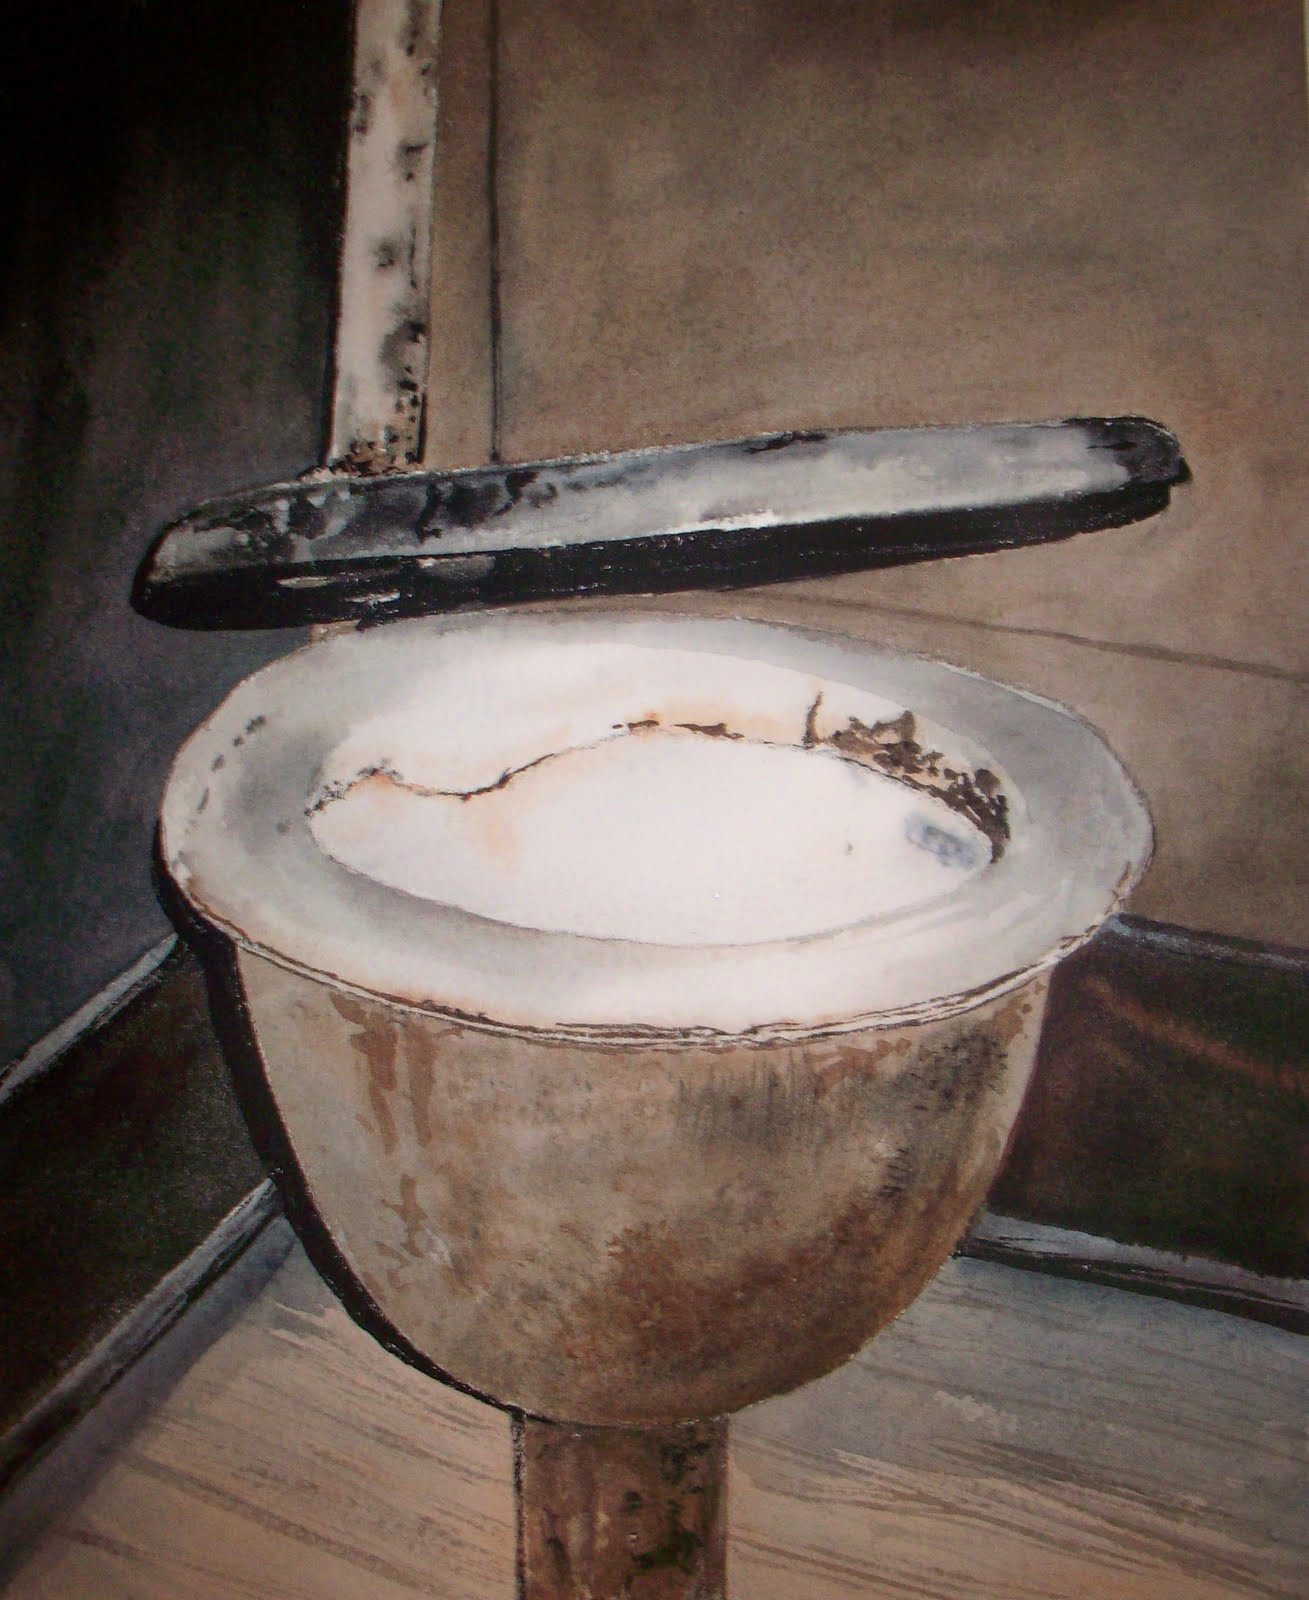 Two hundred years later Alexander Cummings reinvented the flush toilet more commonly called the water closet.